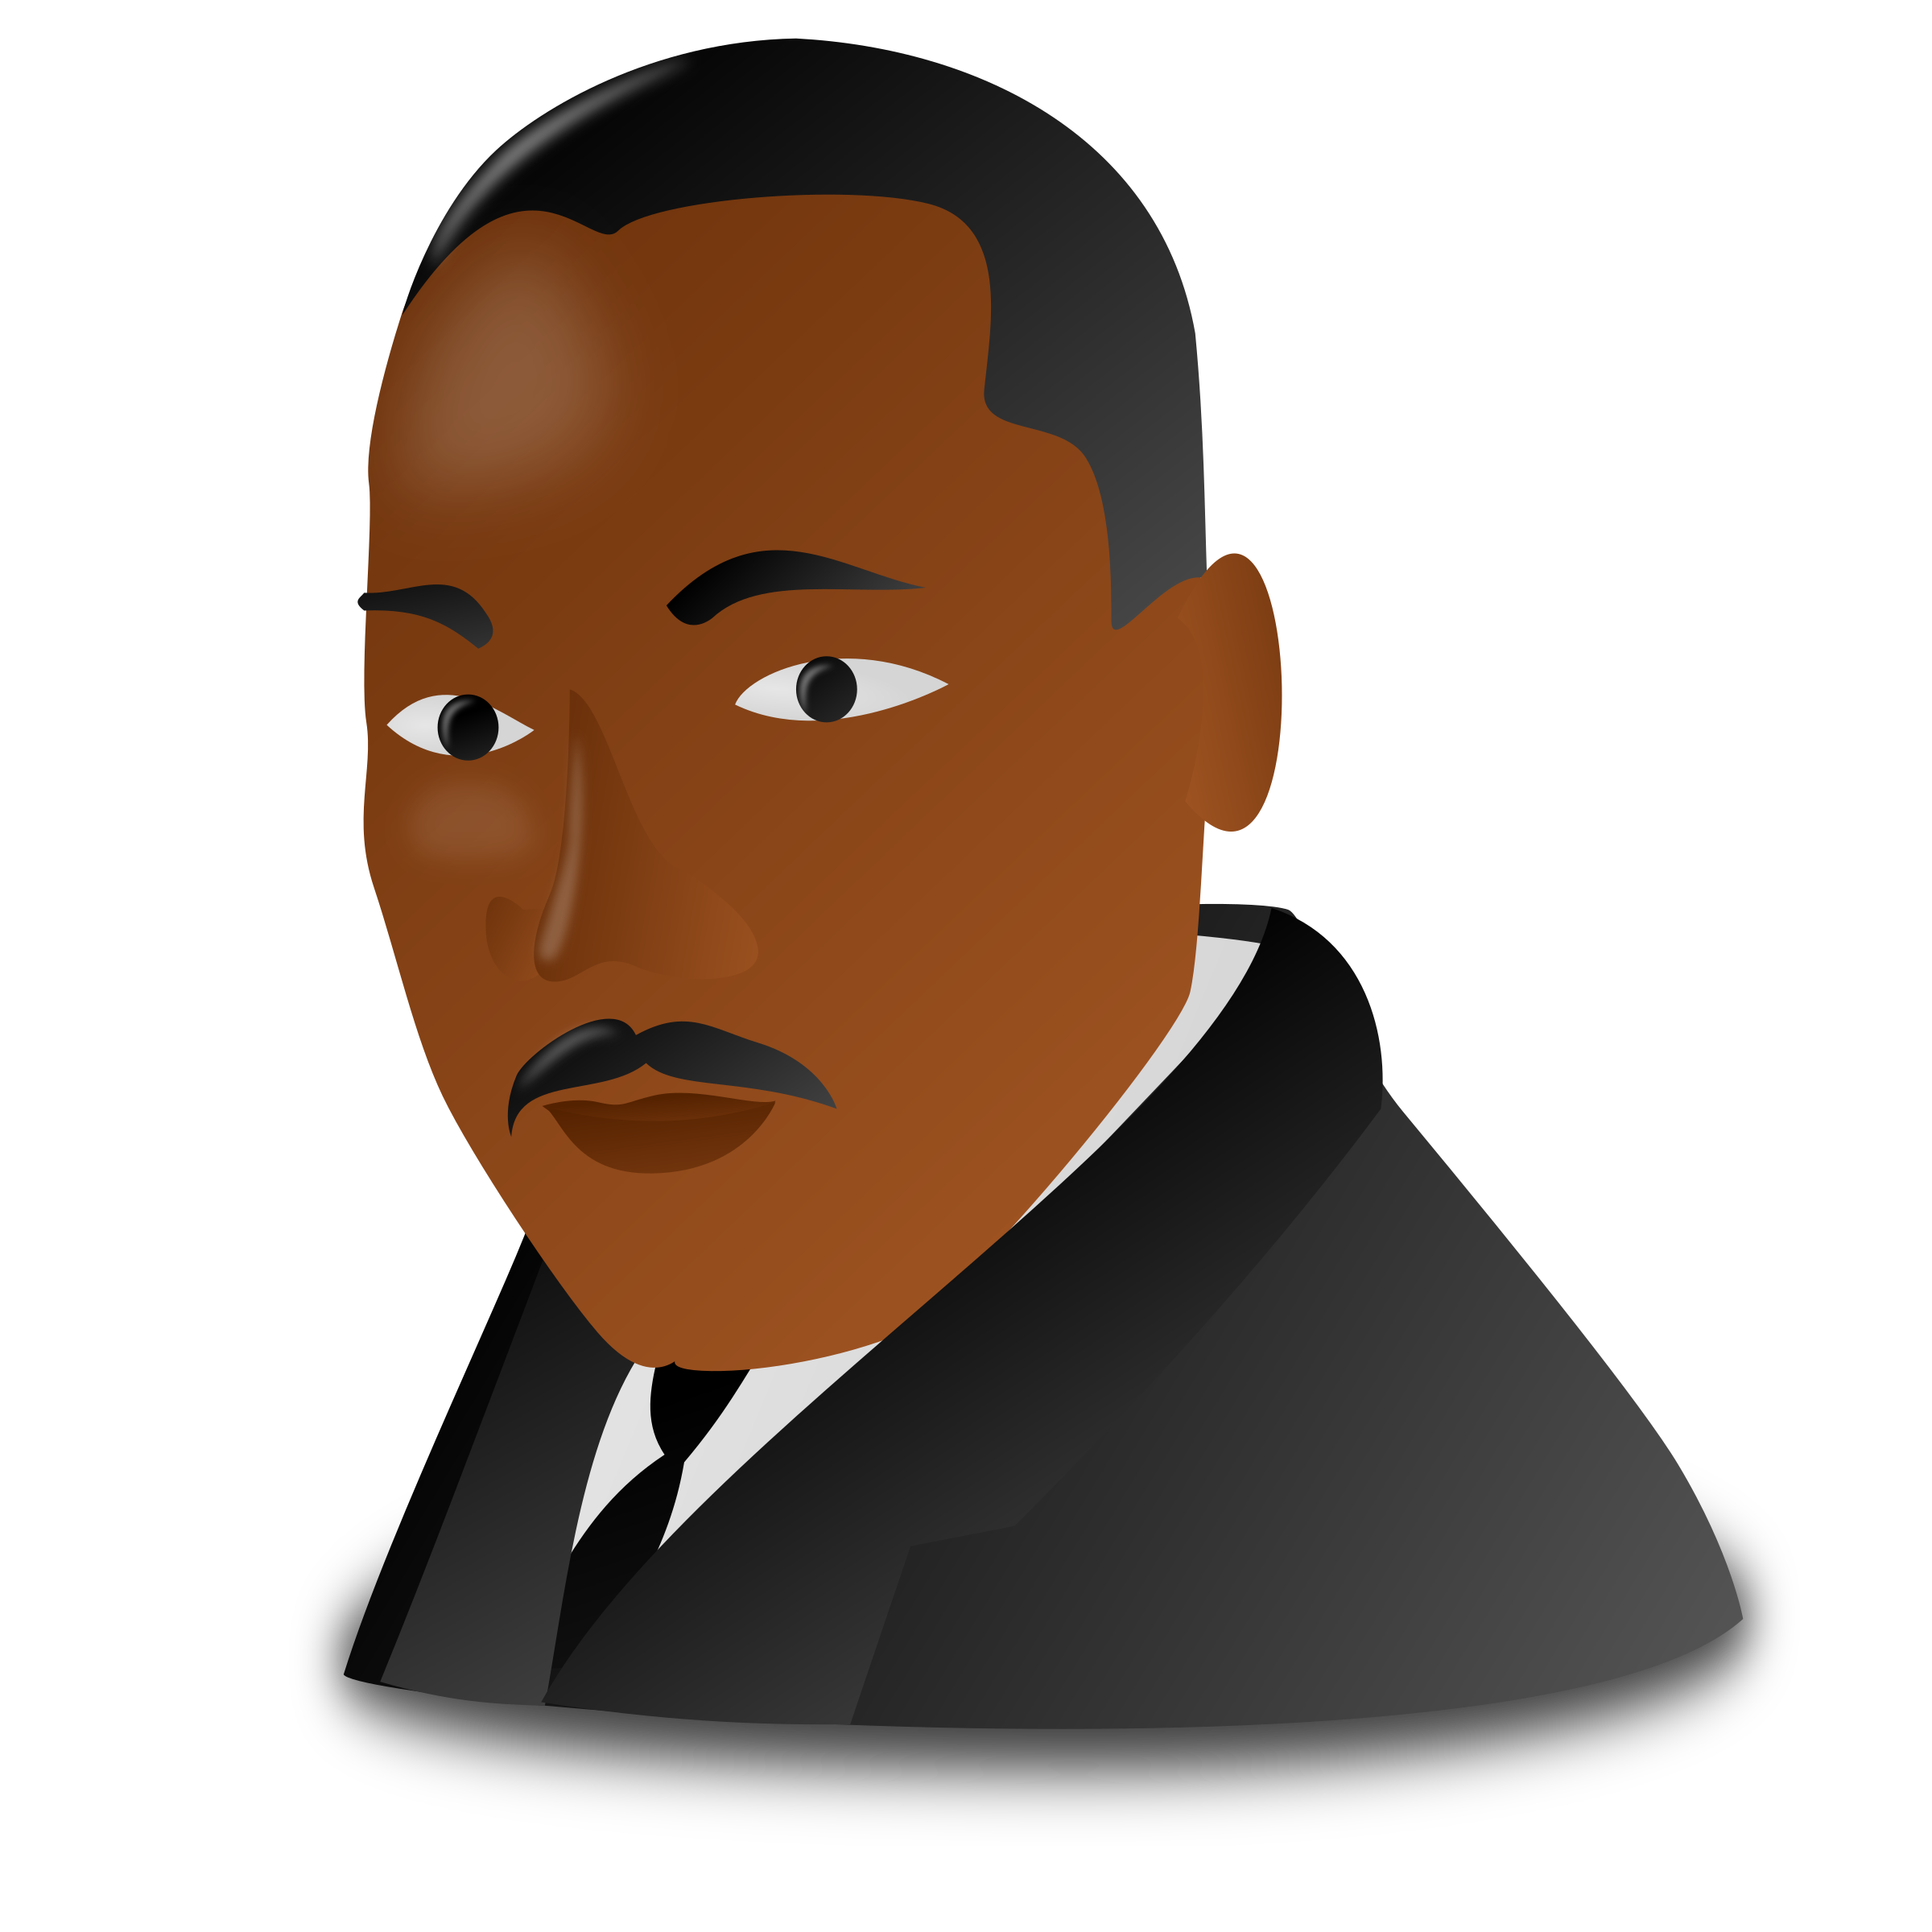 Mlk clipart cartoon. Martin luther king jr